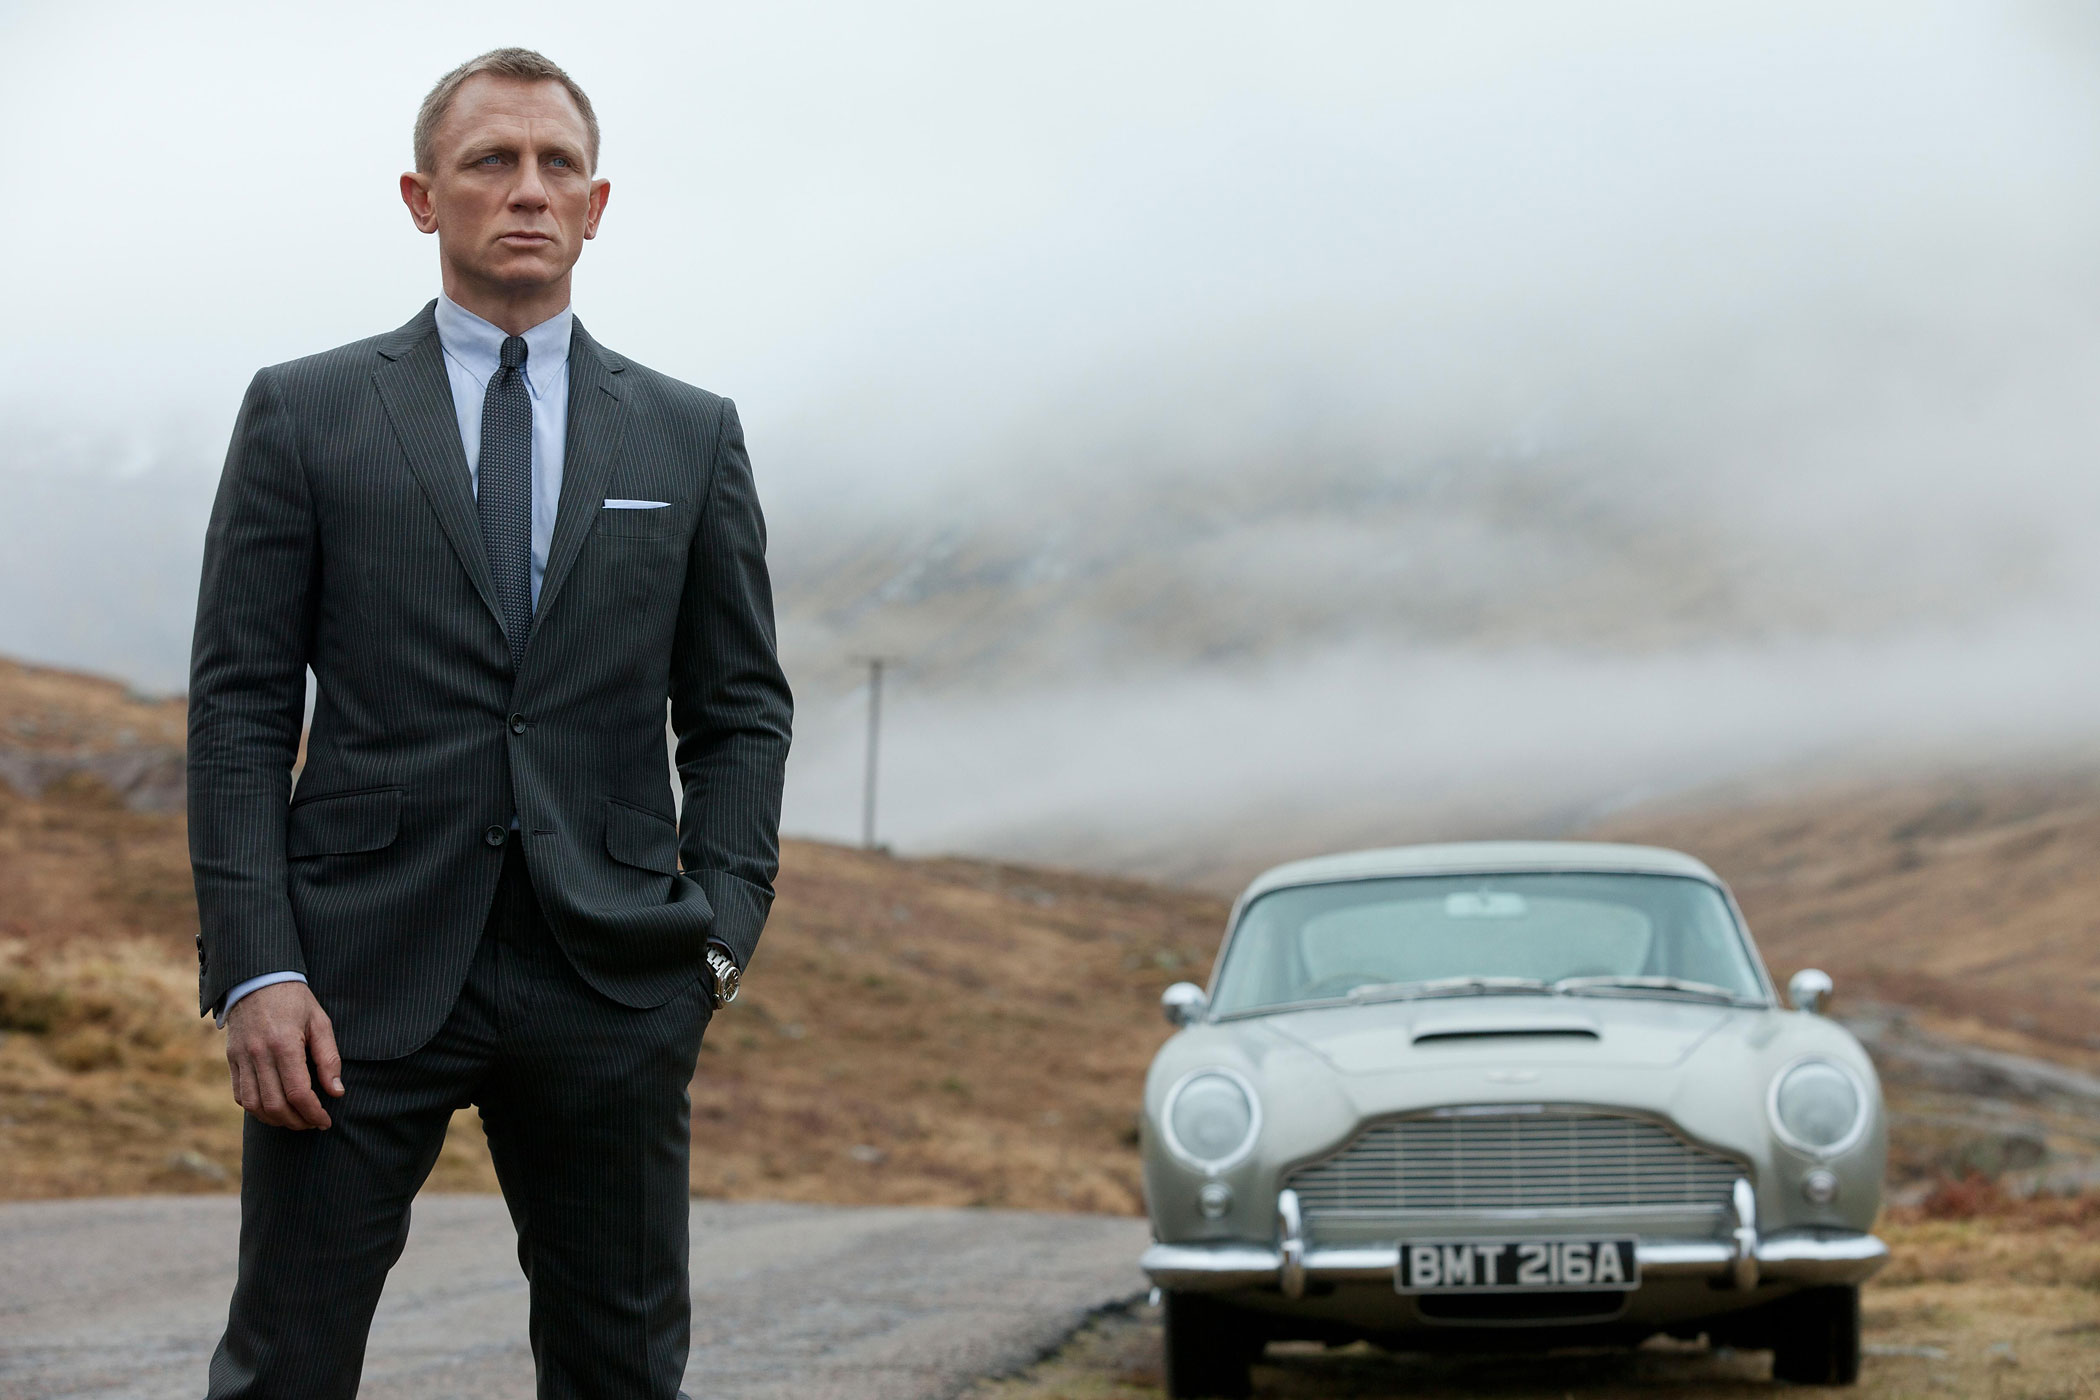 Skyfall, 2012. He's a Scotsman after all! Fifty years after Dr. No, and with Englishman Daniel Craig now playing 007, the James Bond series went to Scotland for a climactic sequence set in the spy's ancestral home, Skyfall. The visit is hell on M (Judi Dench), but our hero survives to die another day.